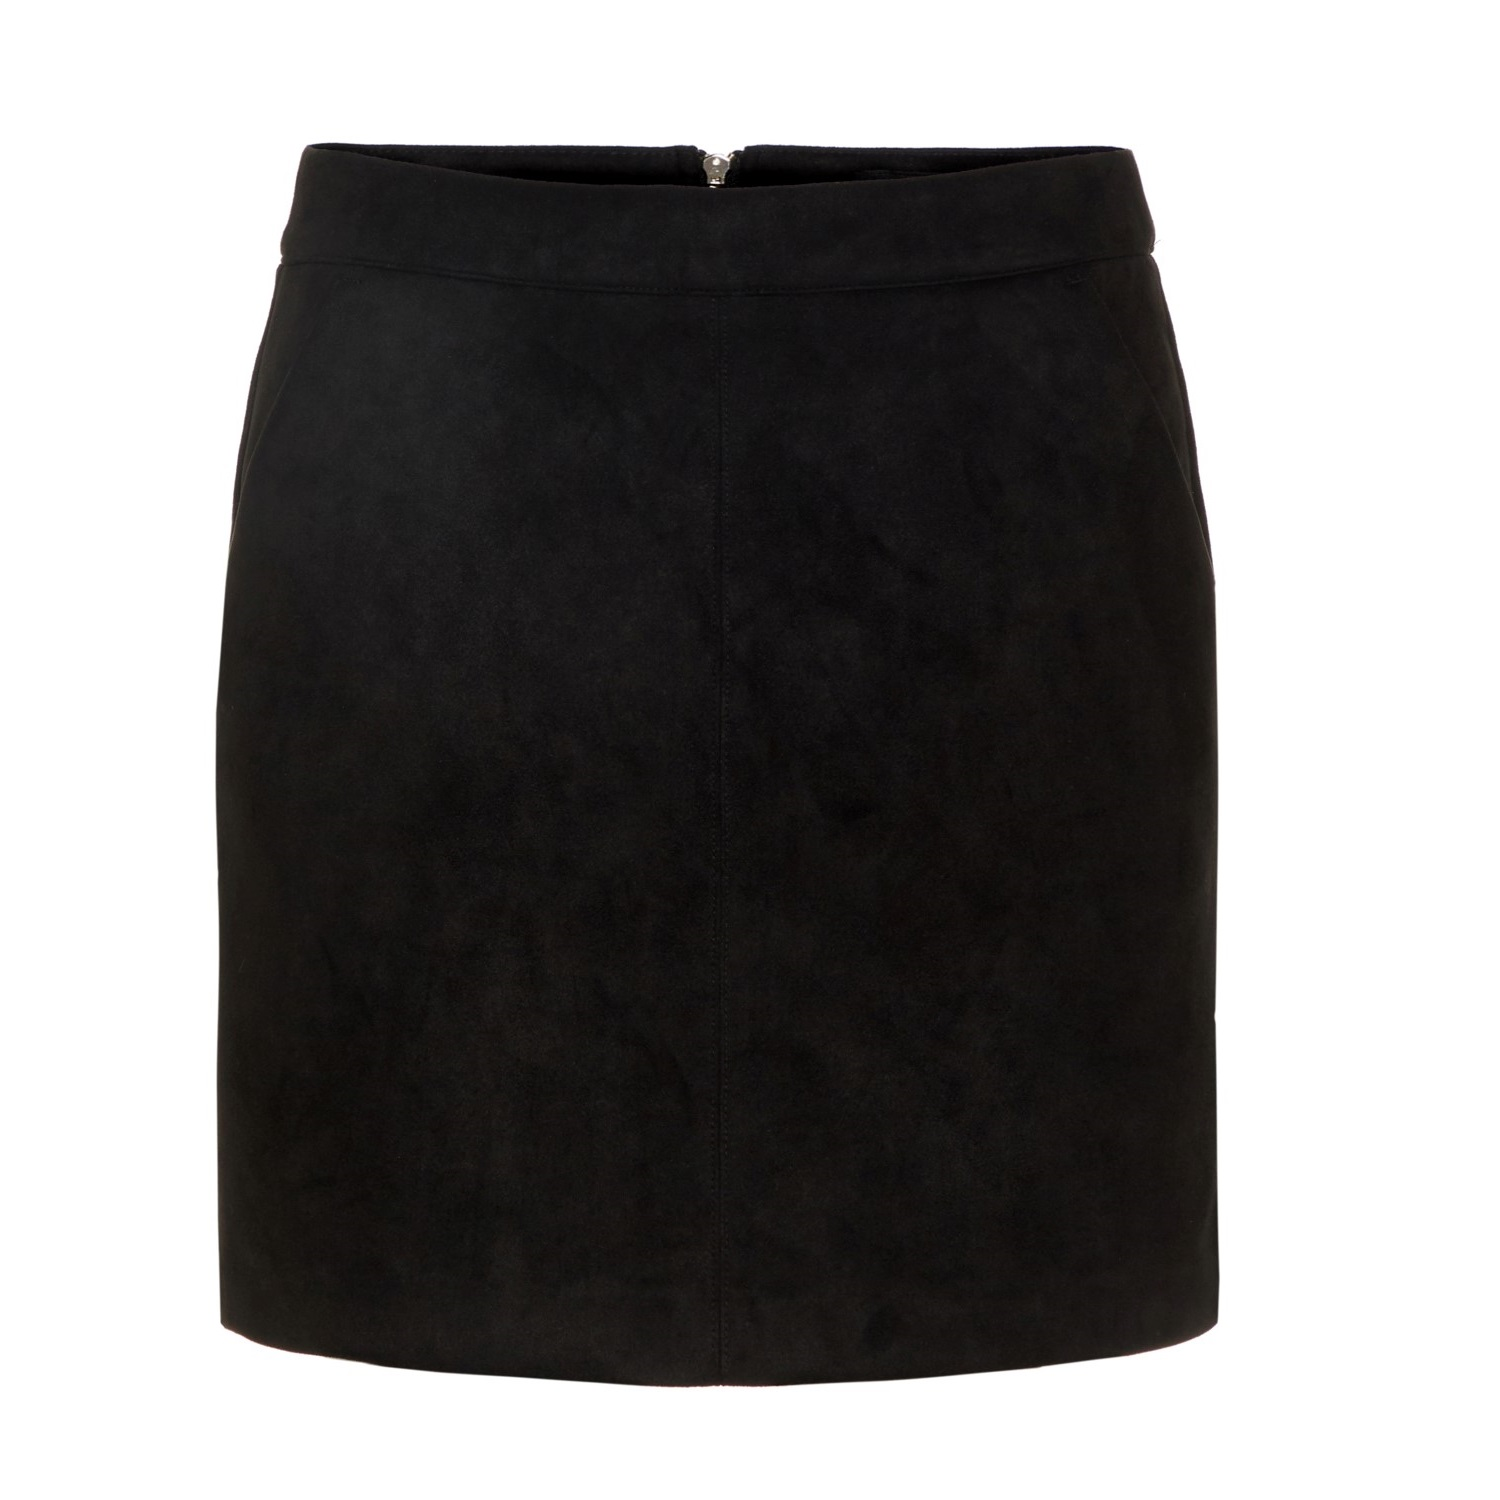 Donnadina Faux Suede Short Skirt